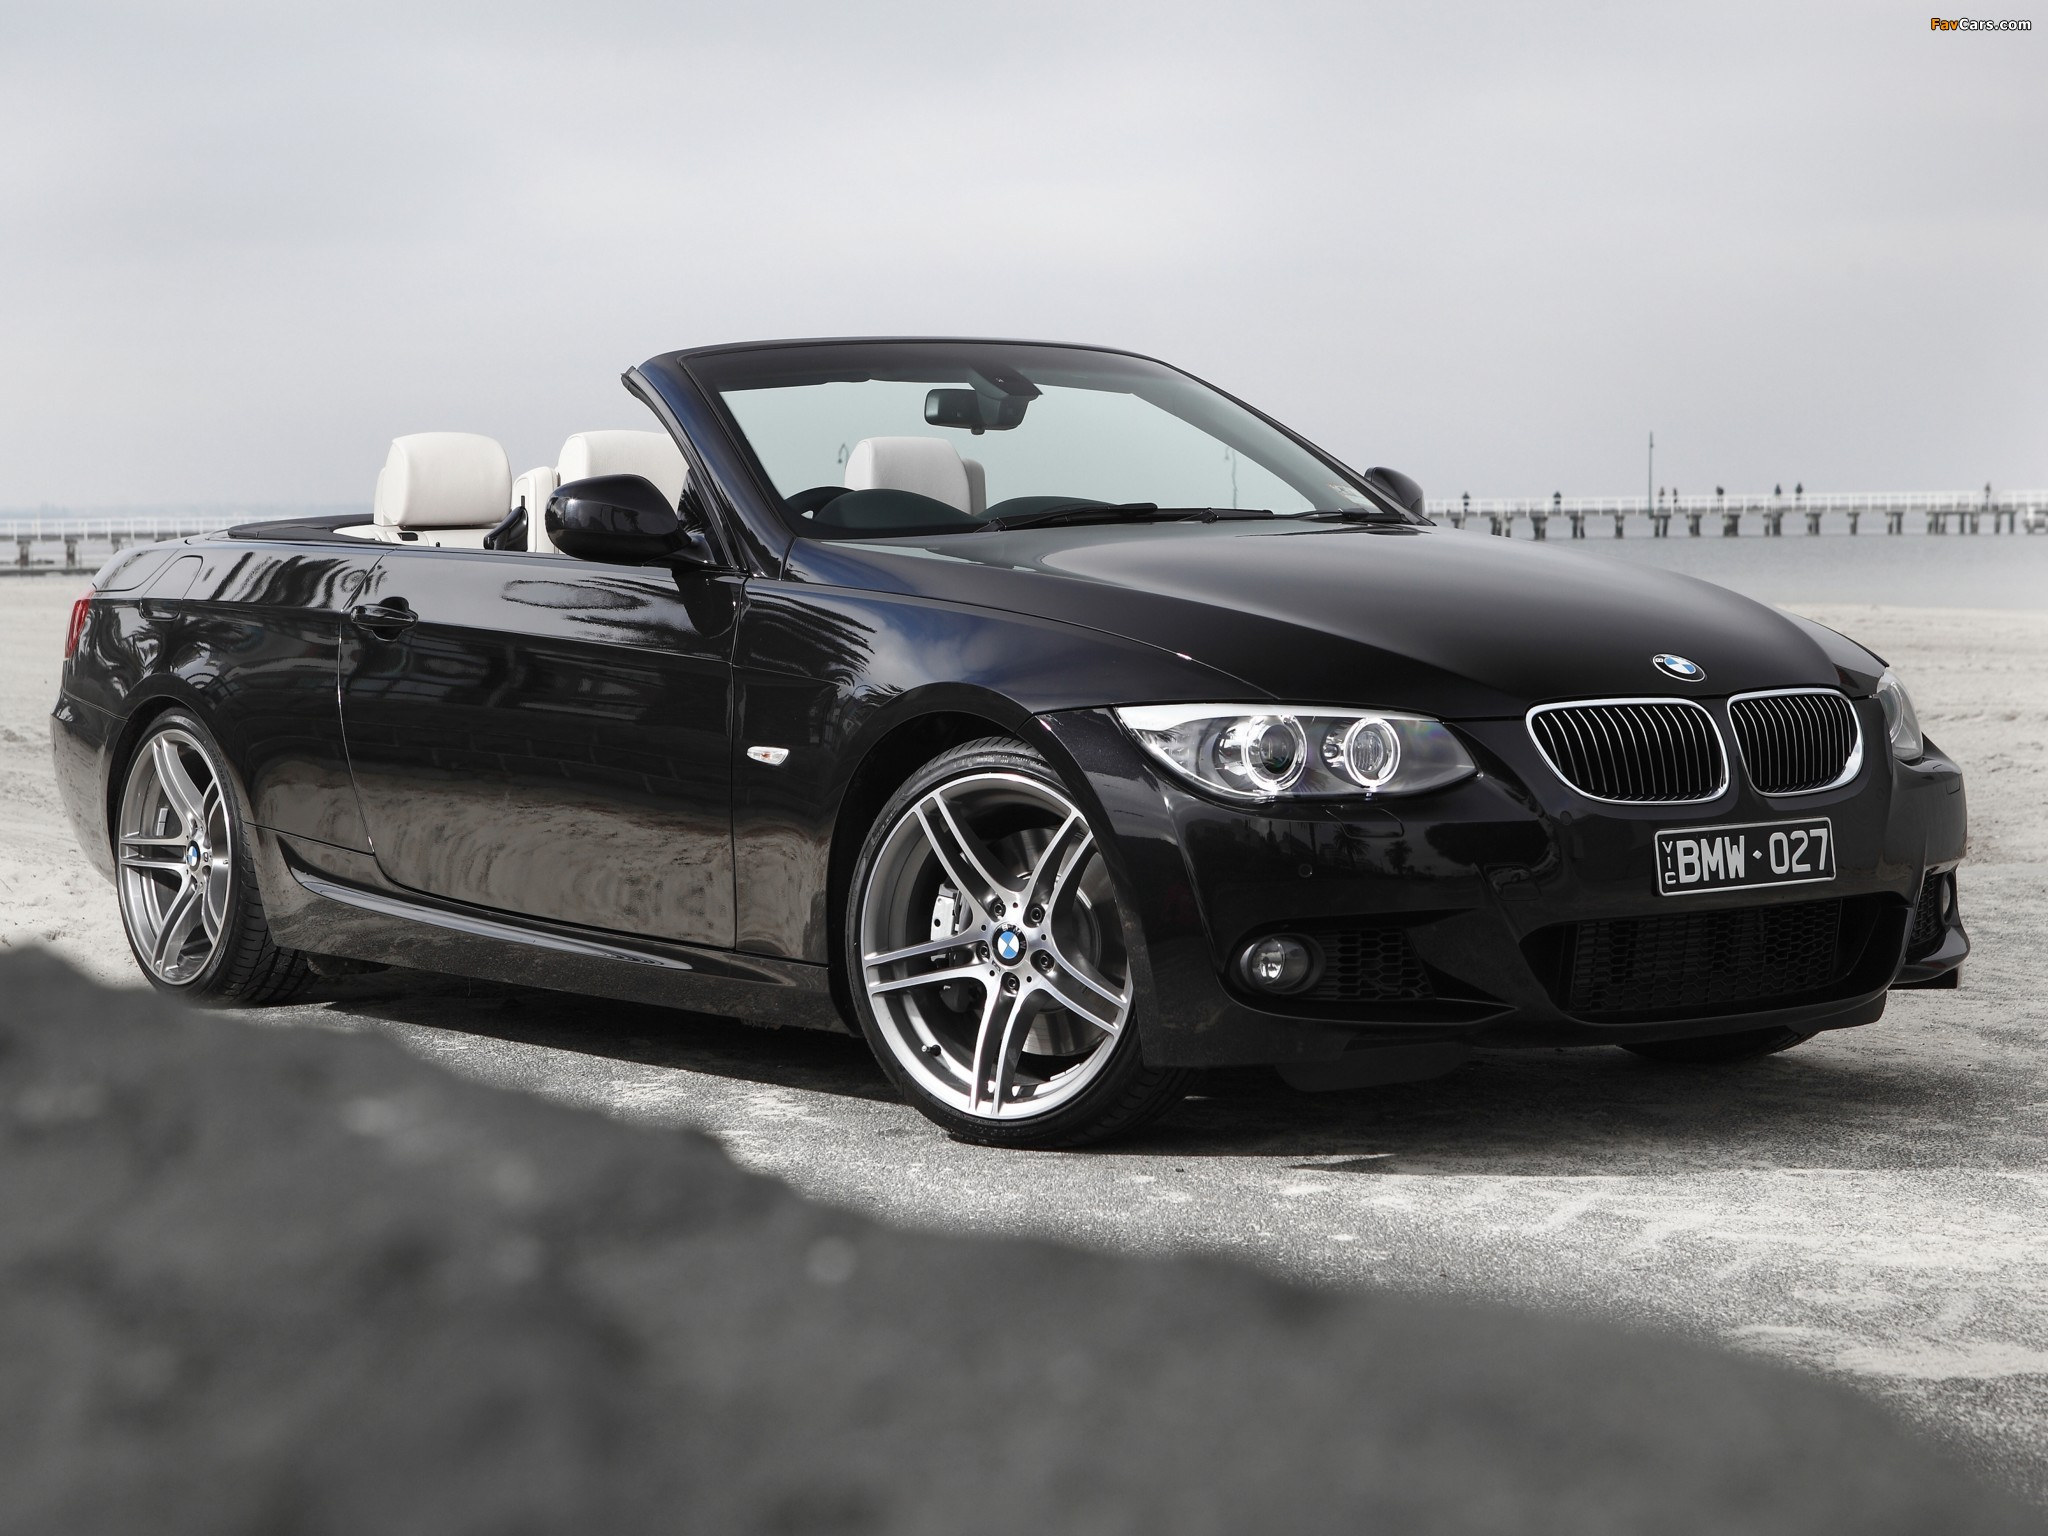 bmw 335i cabrio m sports package au spec e93 2010 wallpapers 2048x1536. Black Bedroom Furniture Sets. Home Design Ideas